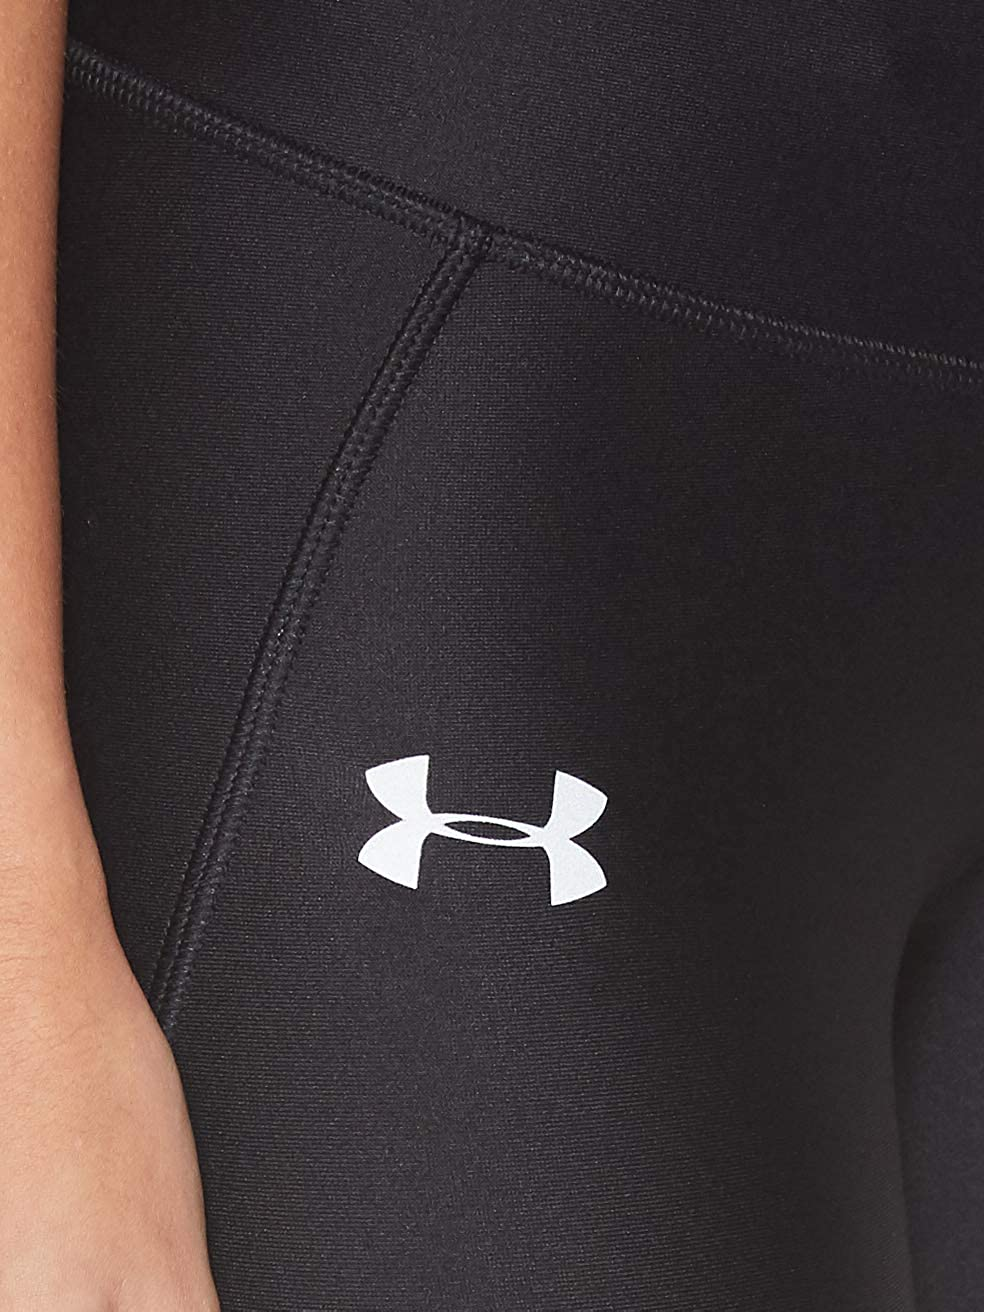 Under Armour Women's Armour Fly Fast Tights : Clothing